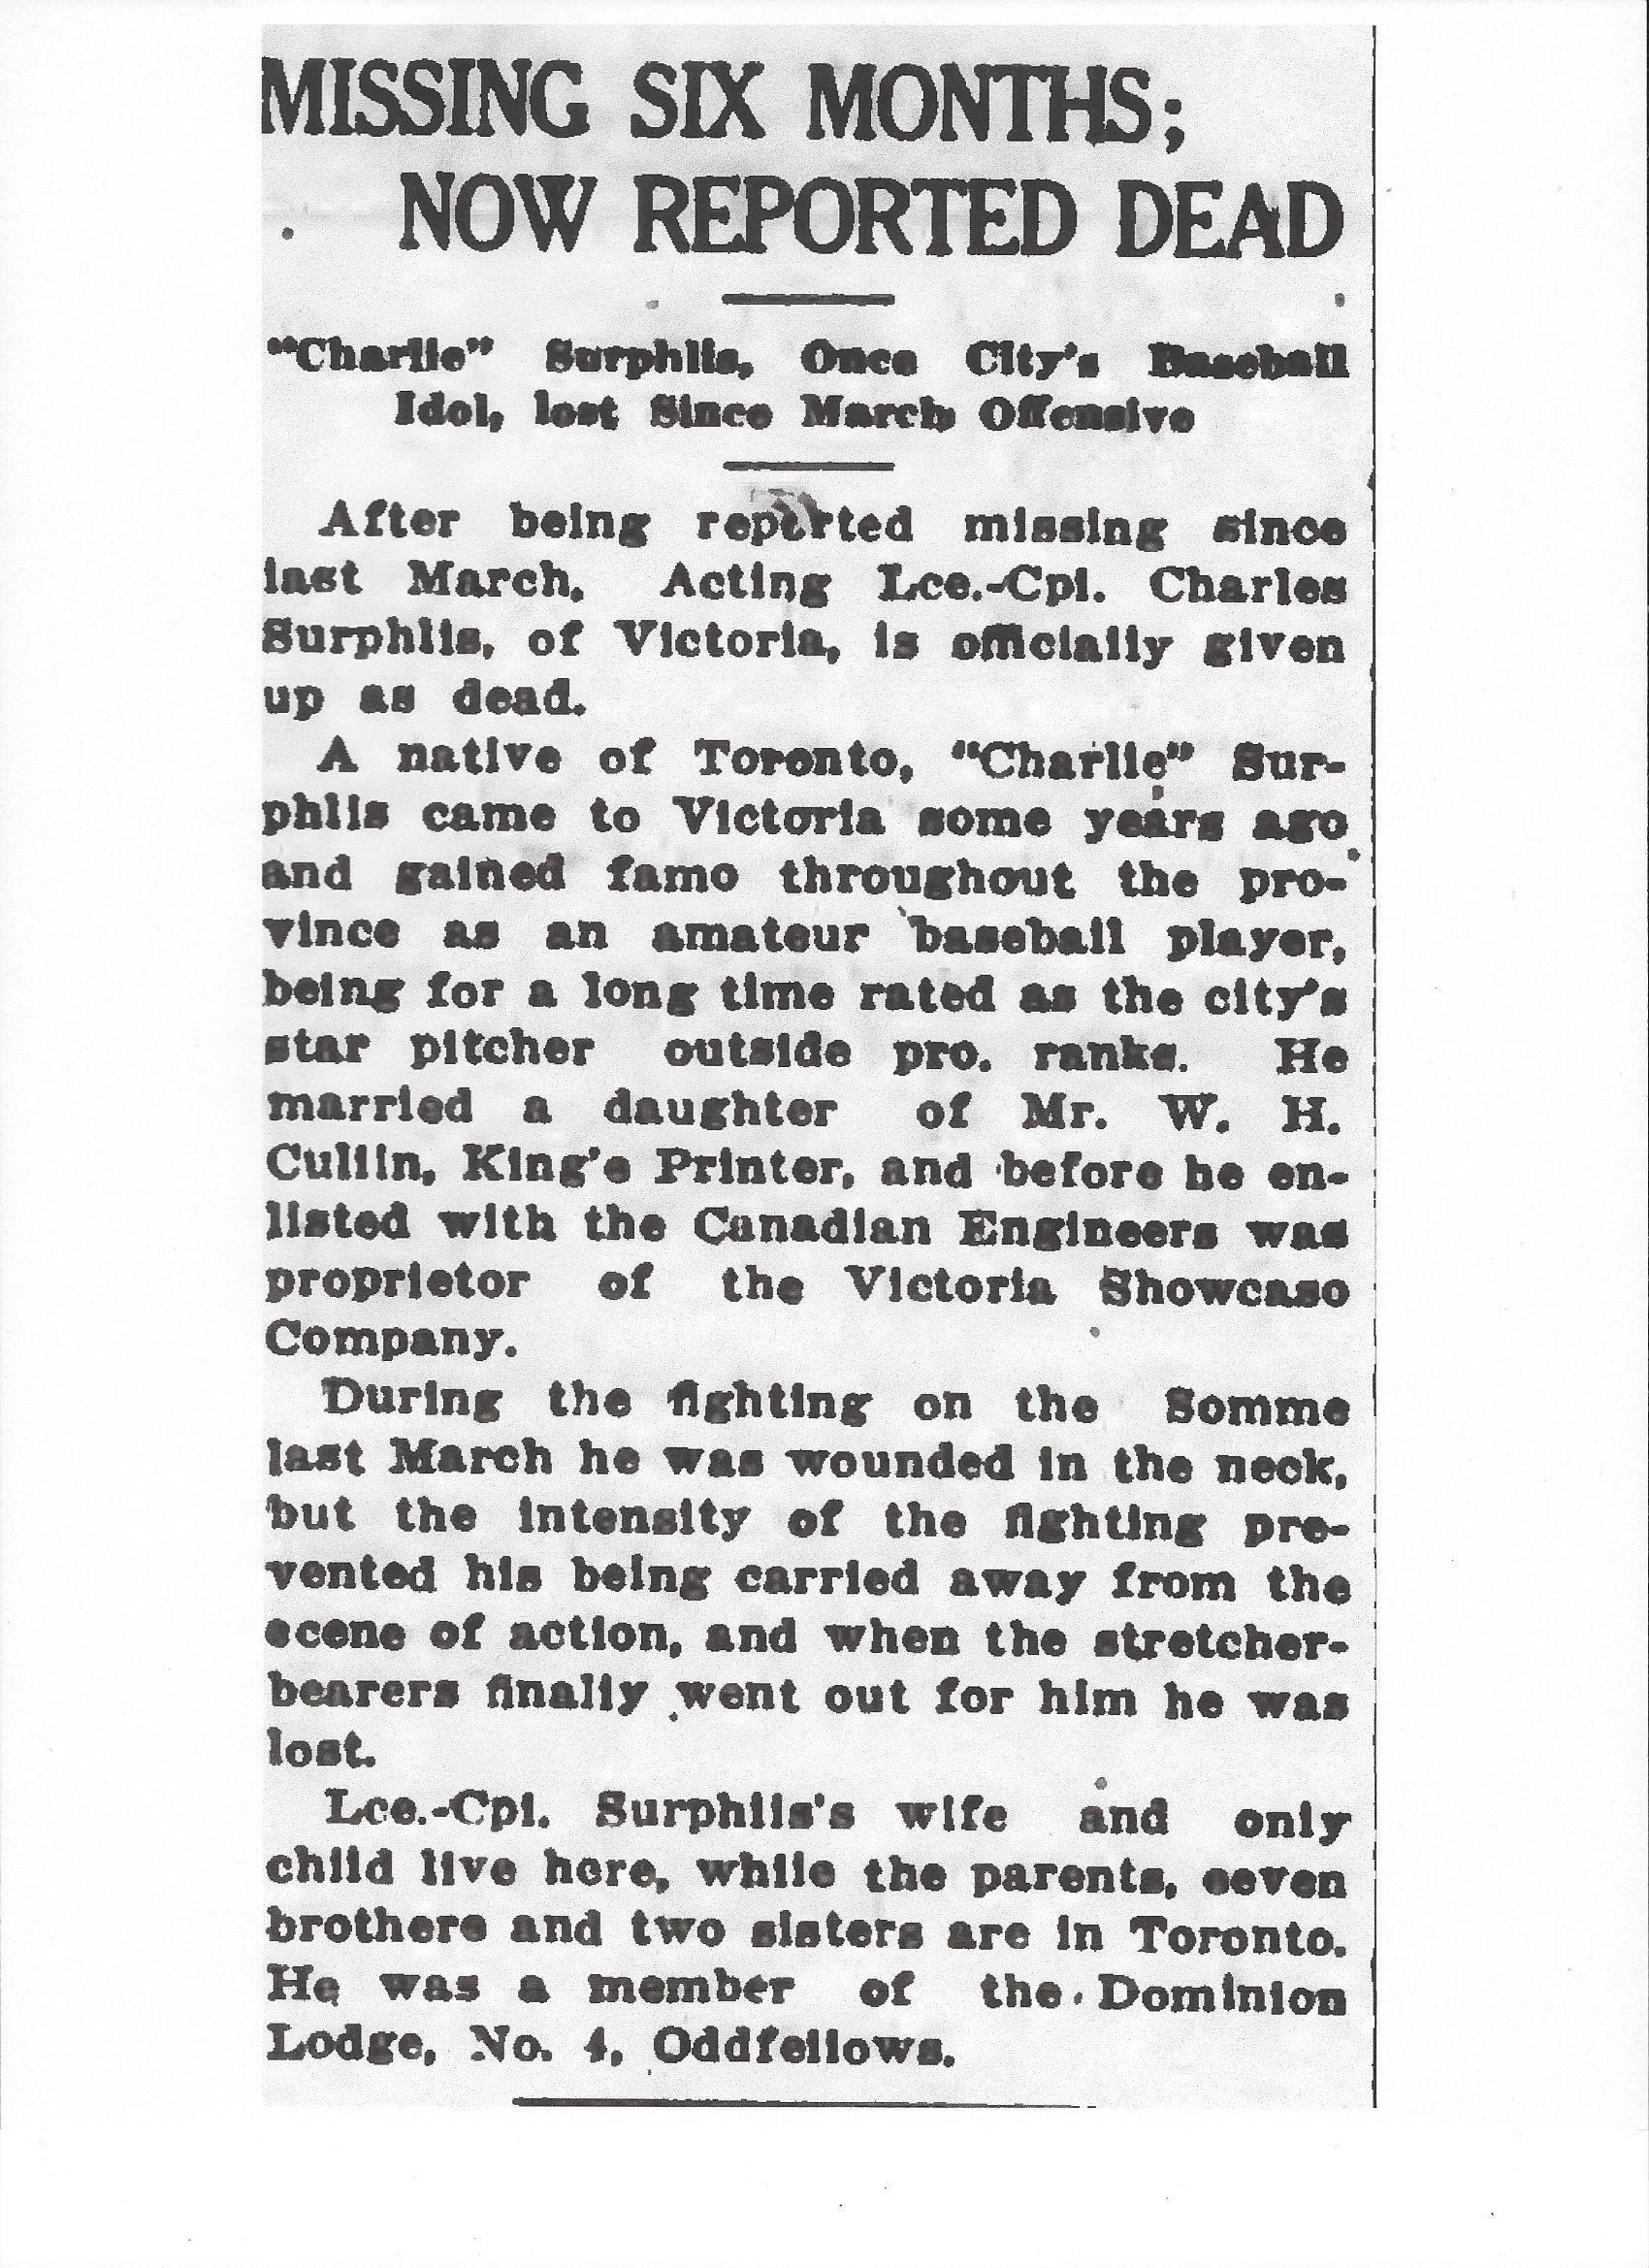 Newspaper Clipping– Newspaper clipping from the Daily Colonist of October 24, 1917. Image taken from web address of http://archive.org/stream/dailycolonist59y273uvic#page/n0/mode/1up